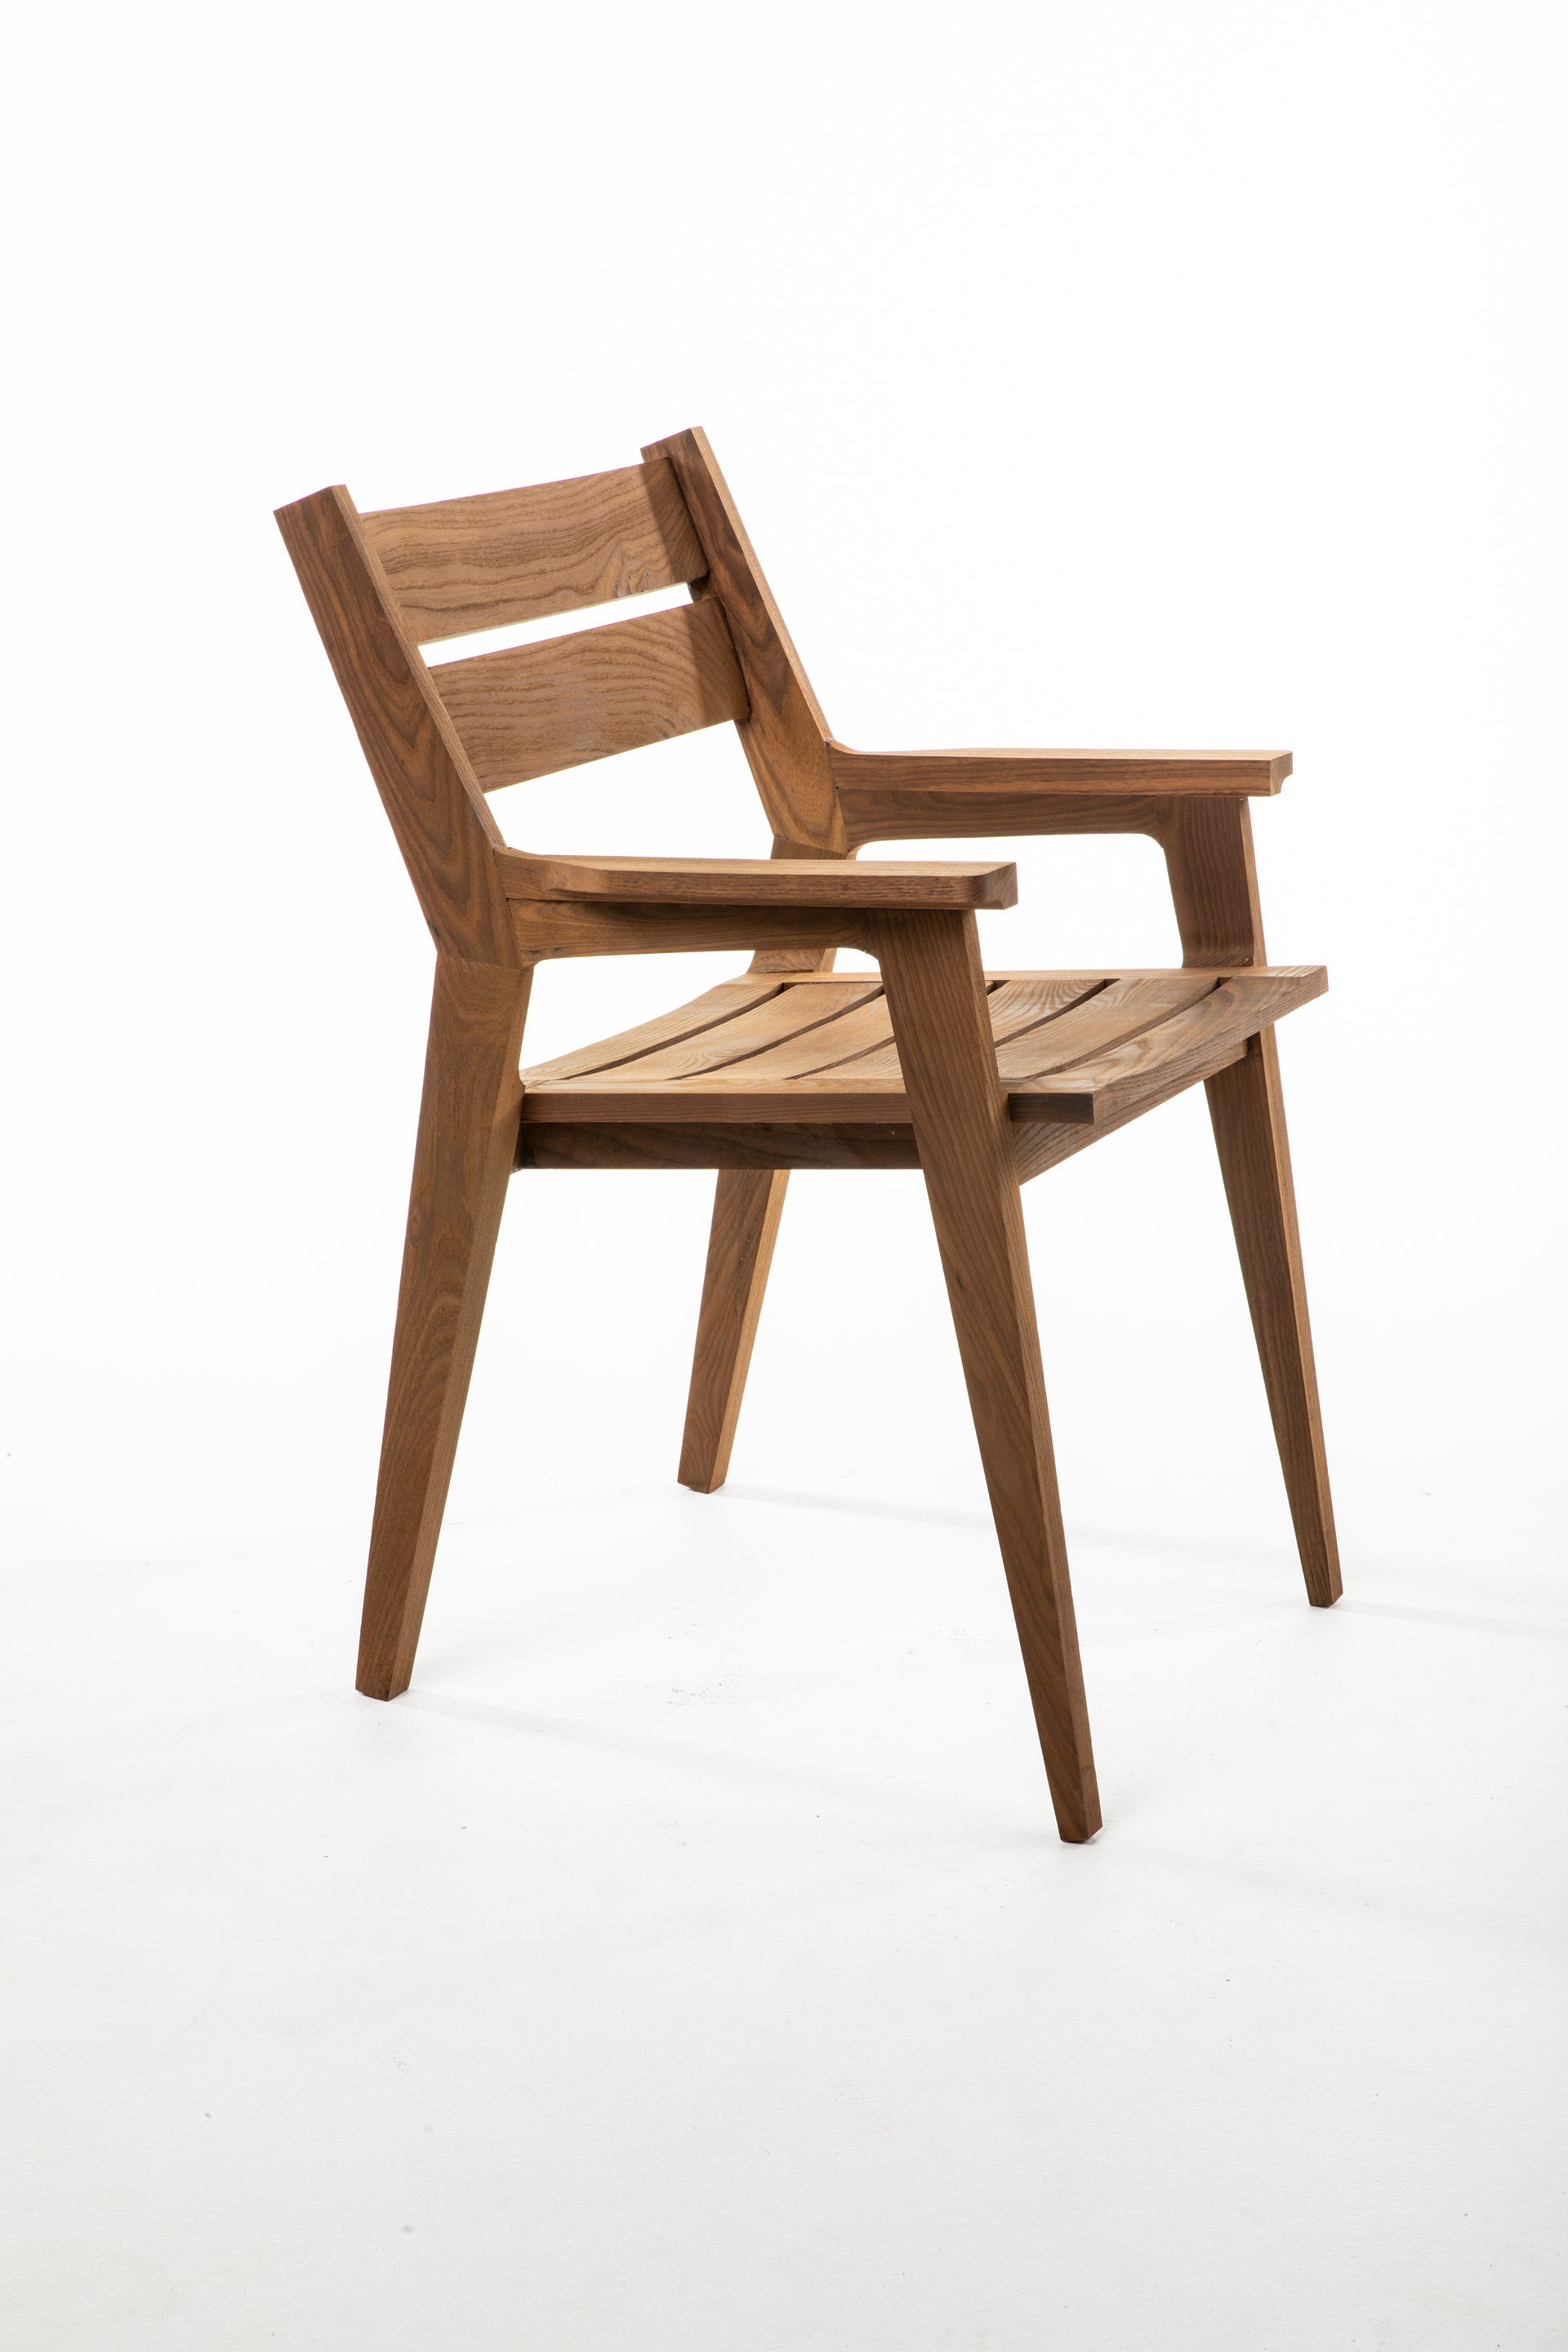 Brown Jordan Mentors Scad Students To Create Furniture